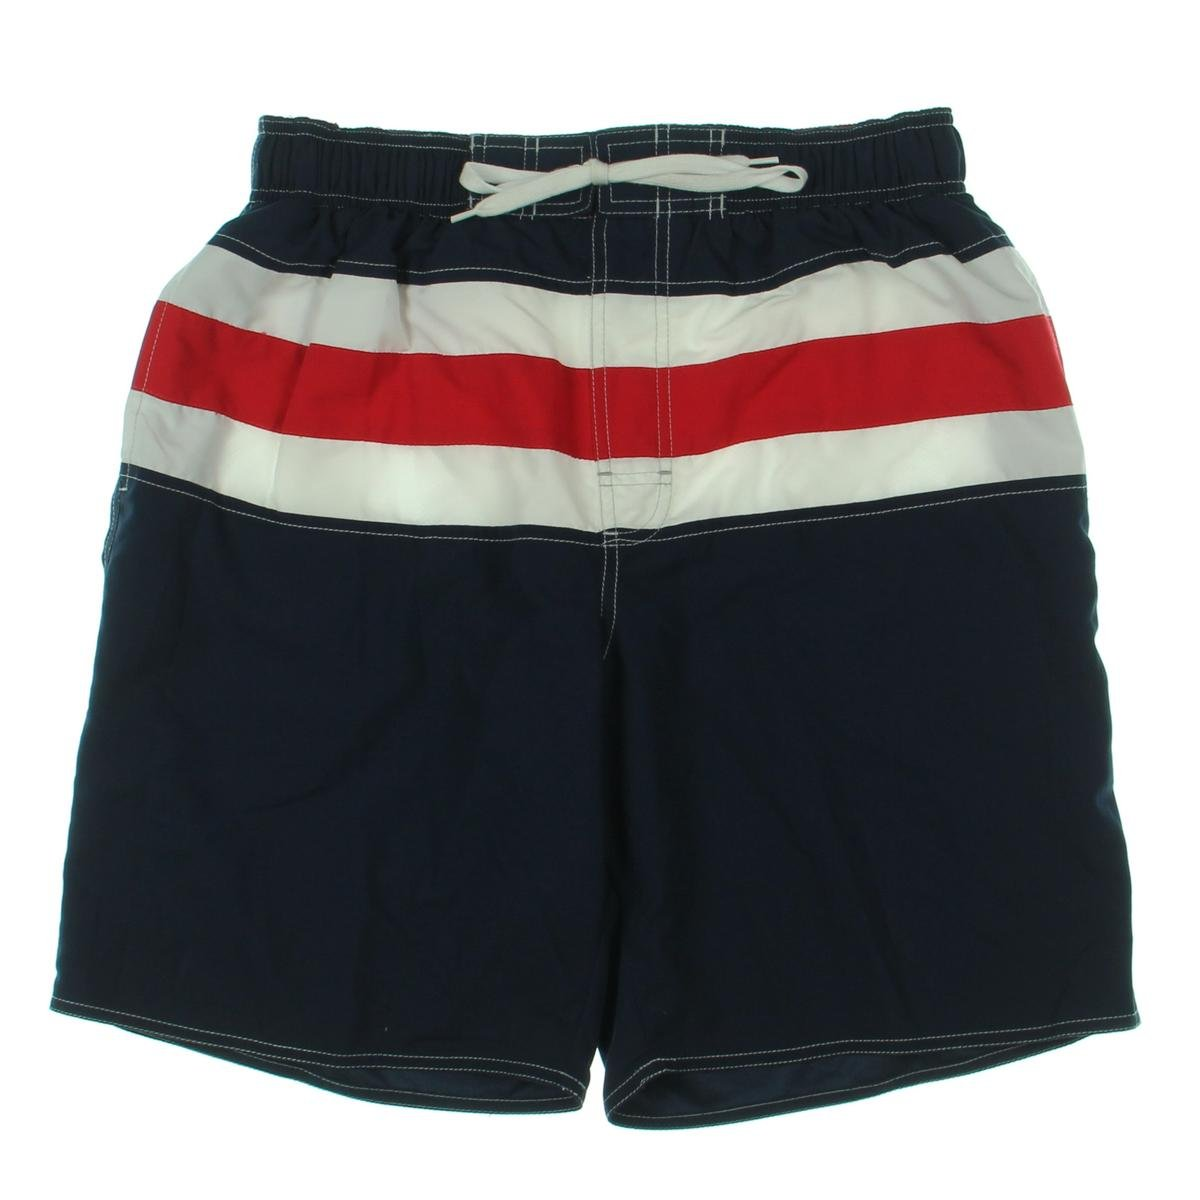 NEW NEWPORT BLUE RED WHITE BLUE USA STRIPED BOARD SHORT SWIMMING TRUNKS M6S0302